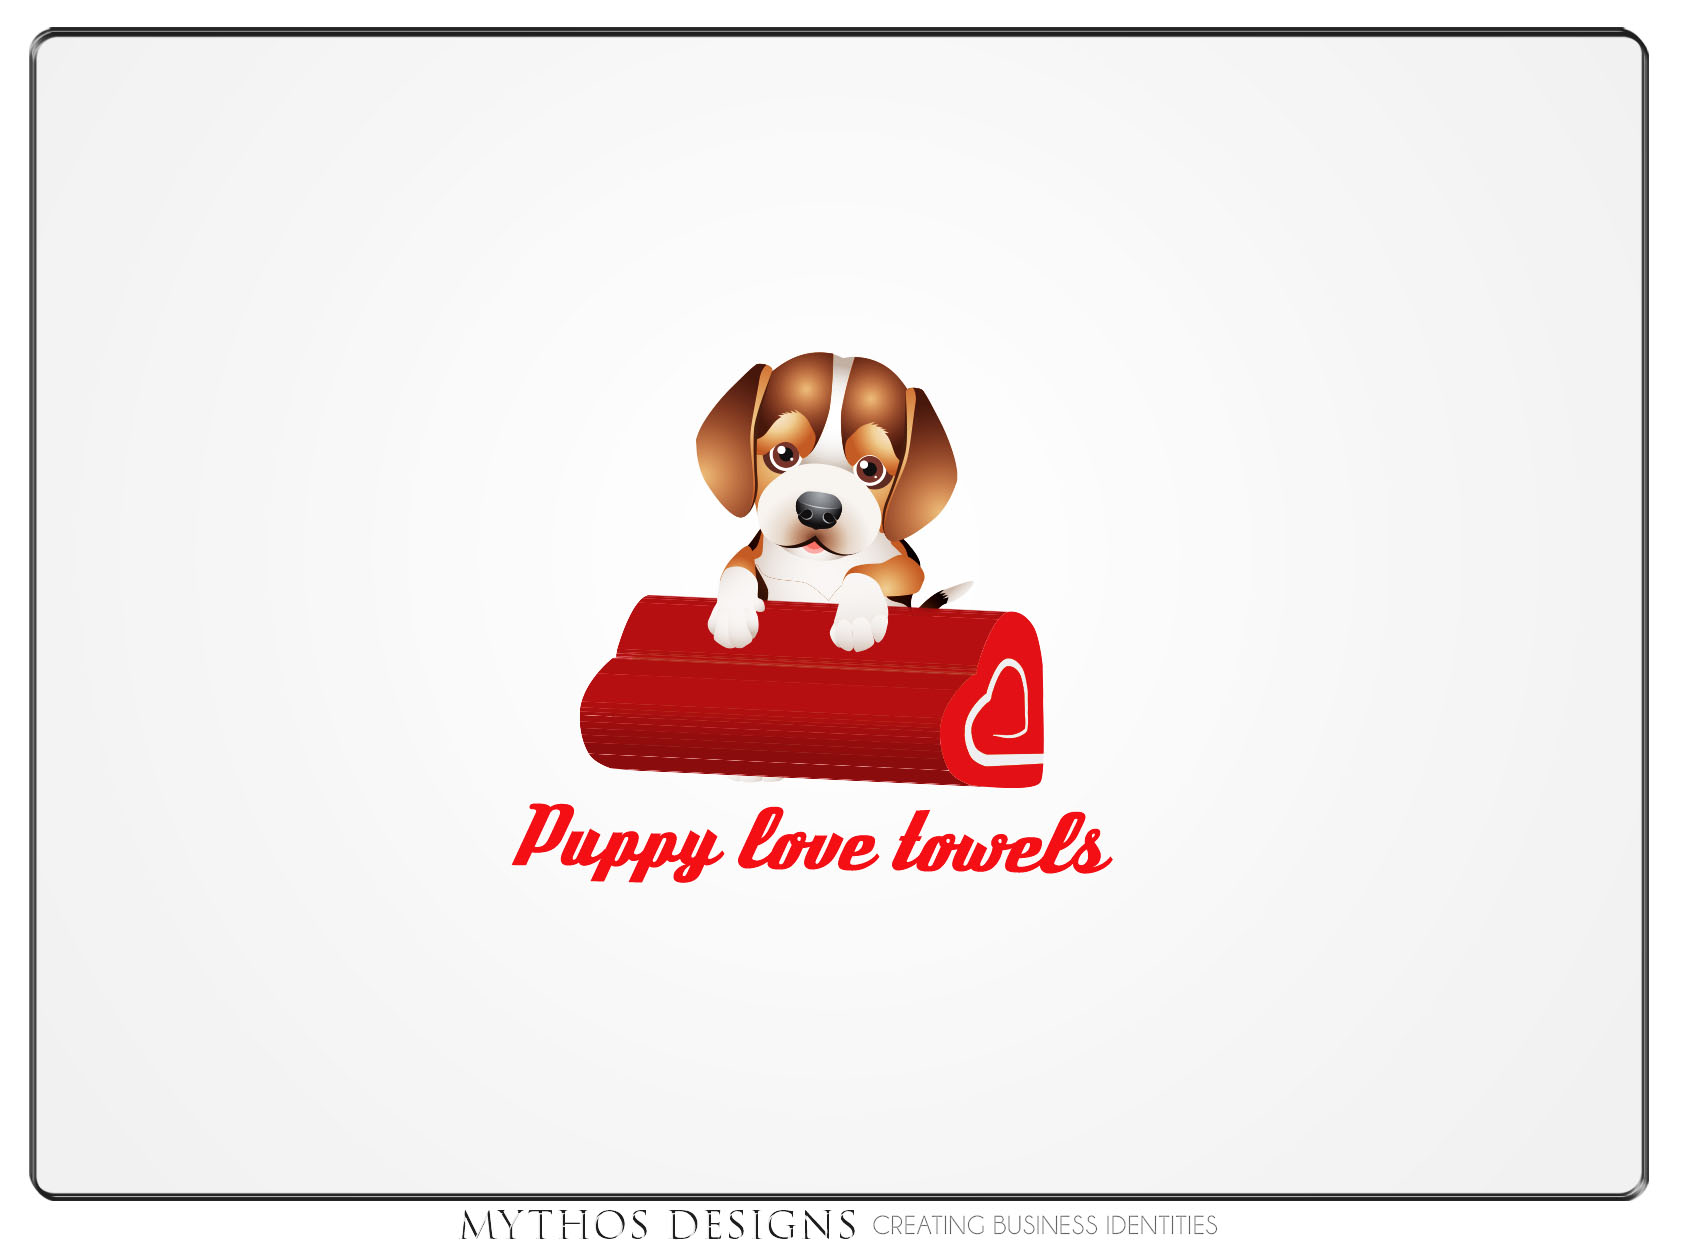 Logo Design by Mythos Designs - Entry No. 44 in the Logo Design Contest Artistic Logo Design for Puppy Love Towels.